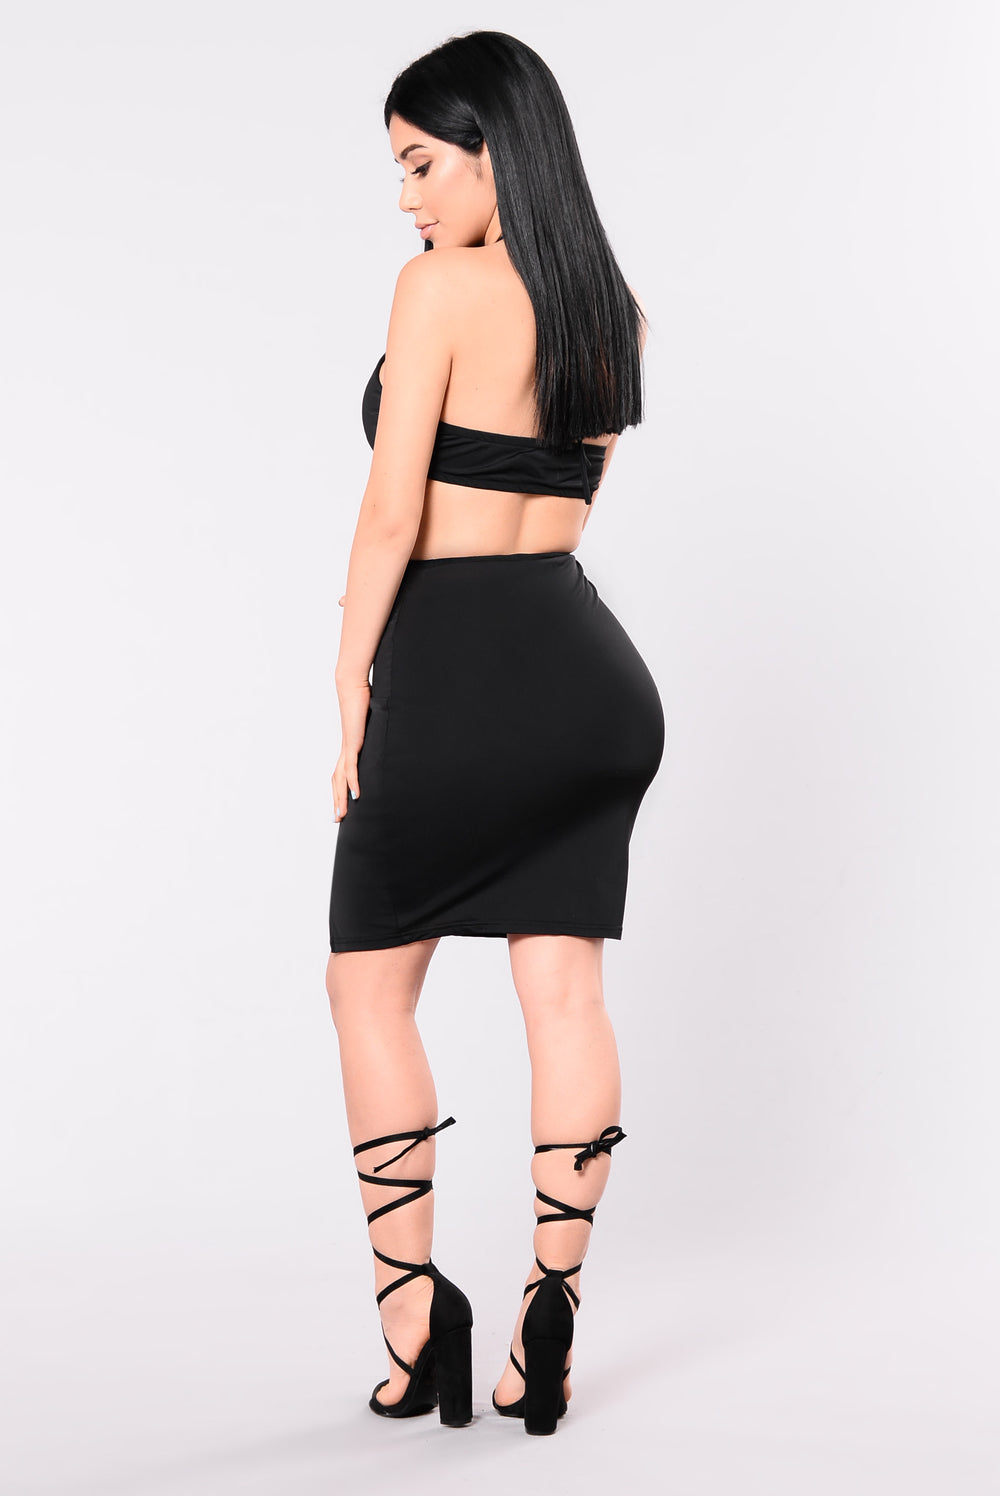 I'm Outside Halter Dress - Black